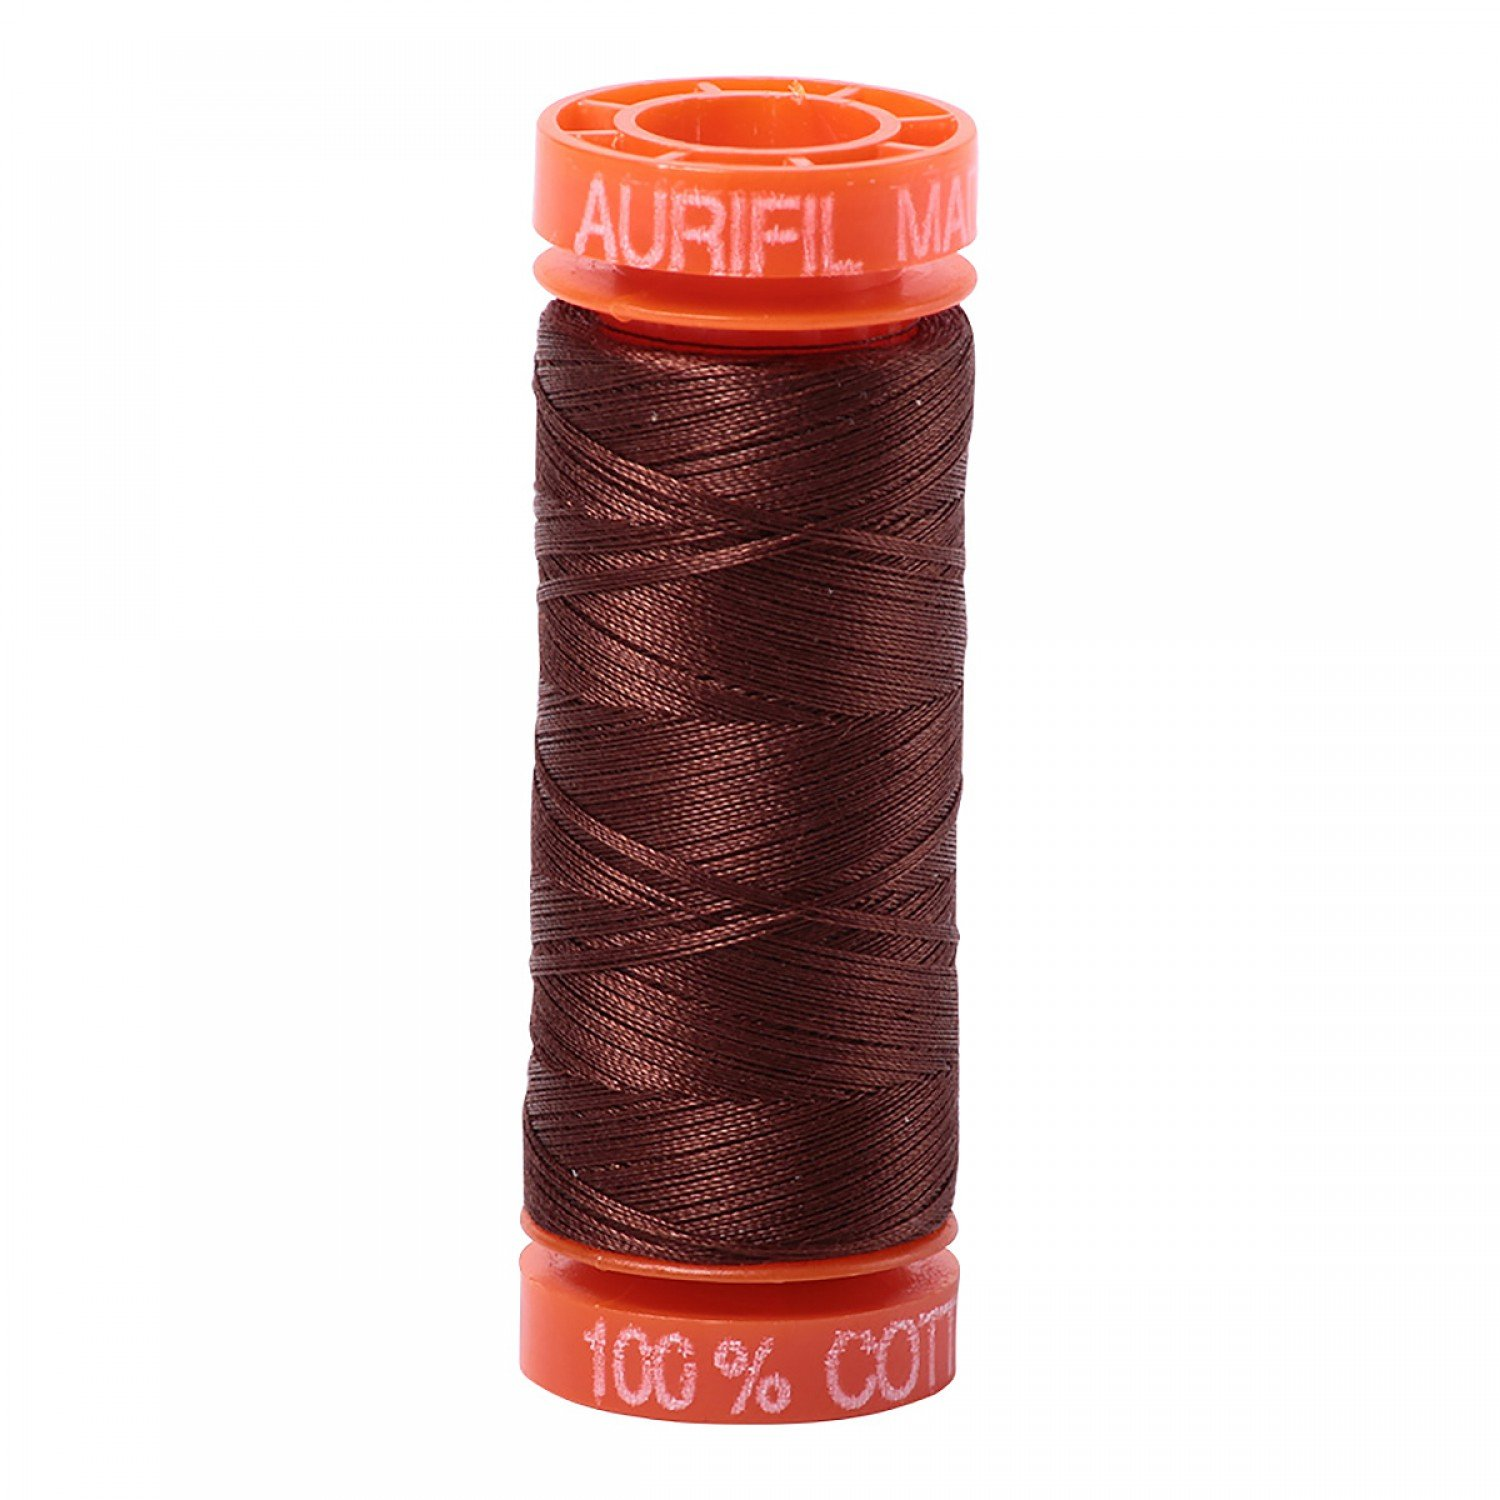 50 wt Aurifil - AS2360 - Chocolate